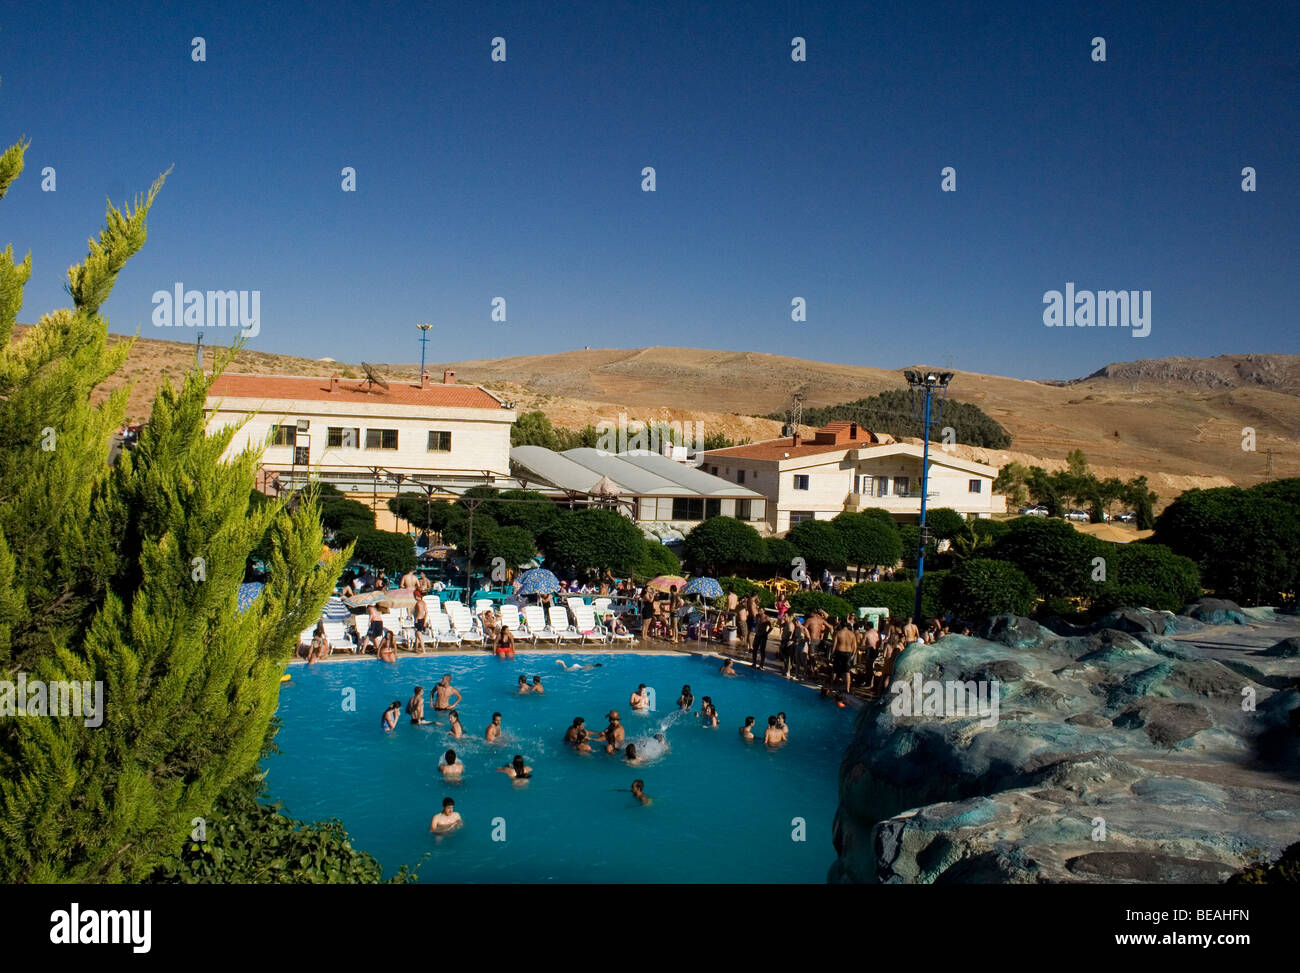 A water park just outside of Damascus on route to Beirut called Splash. Situated in a dry baron desert. - Stock Image